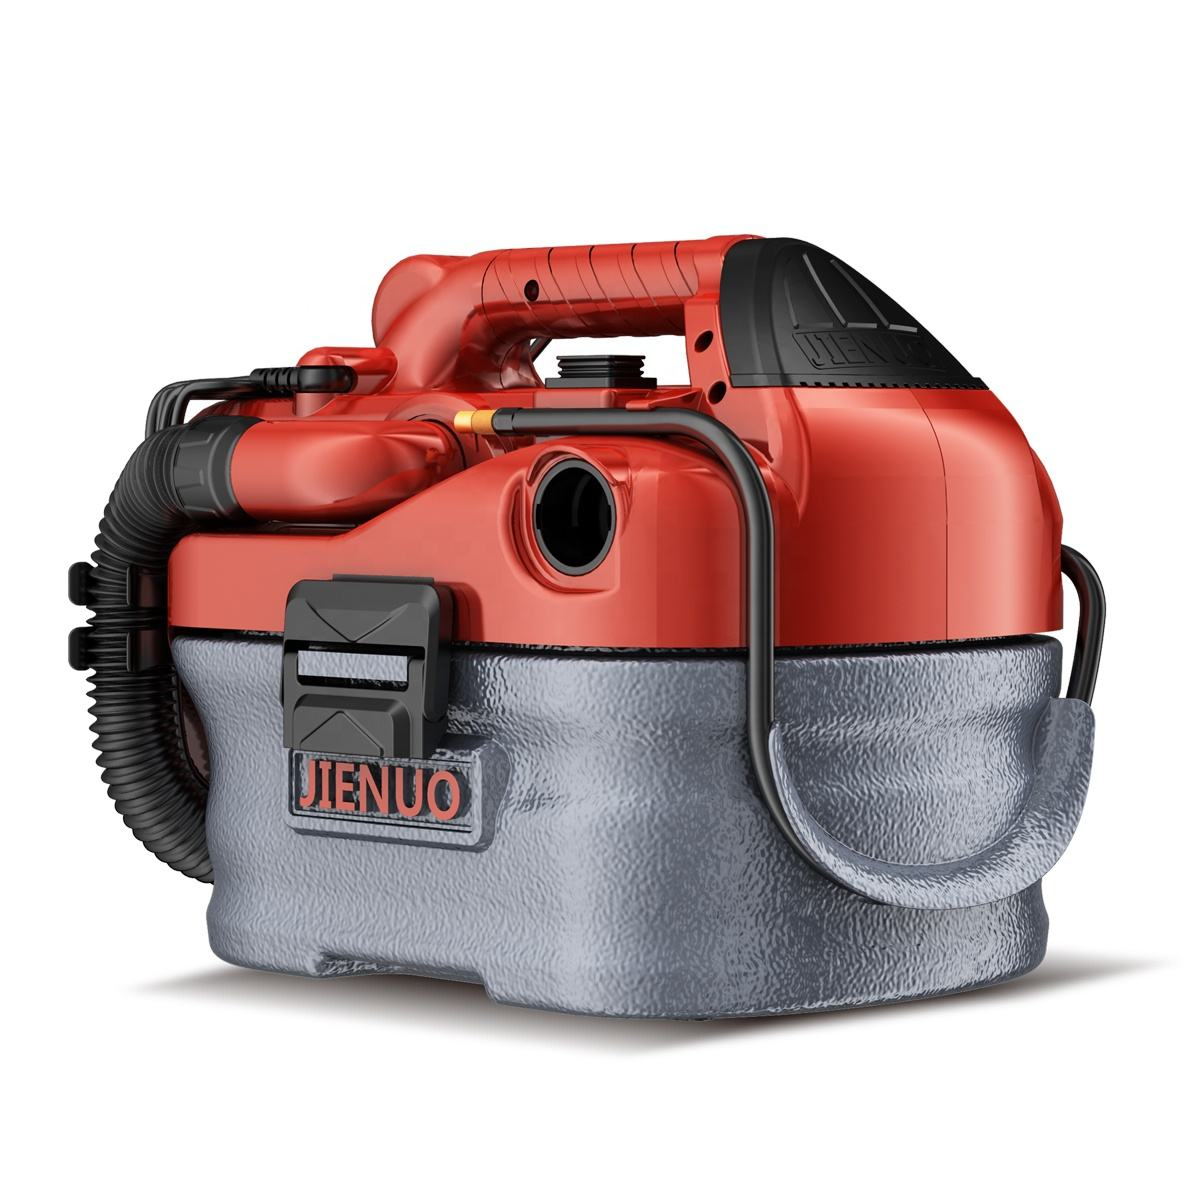 JIENUO 4 Gallon battery Wet Dry Vacuum, 4 Peak HP Stainless Steel 3 in 1 Shop Vac Blower with Powerful Suction